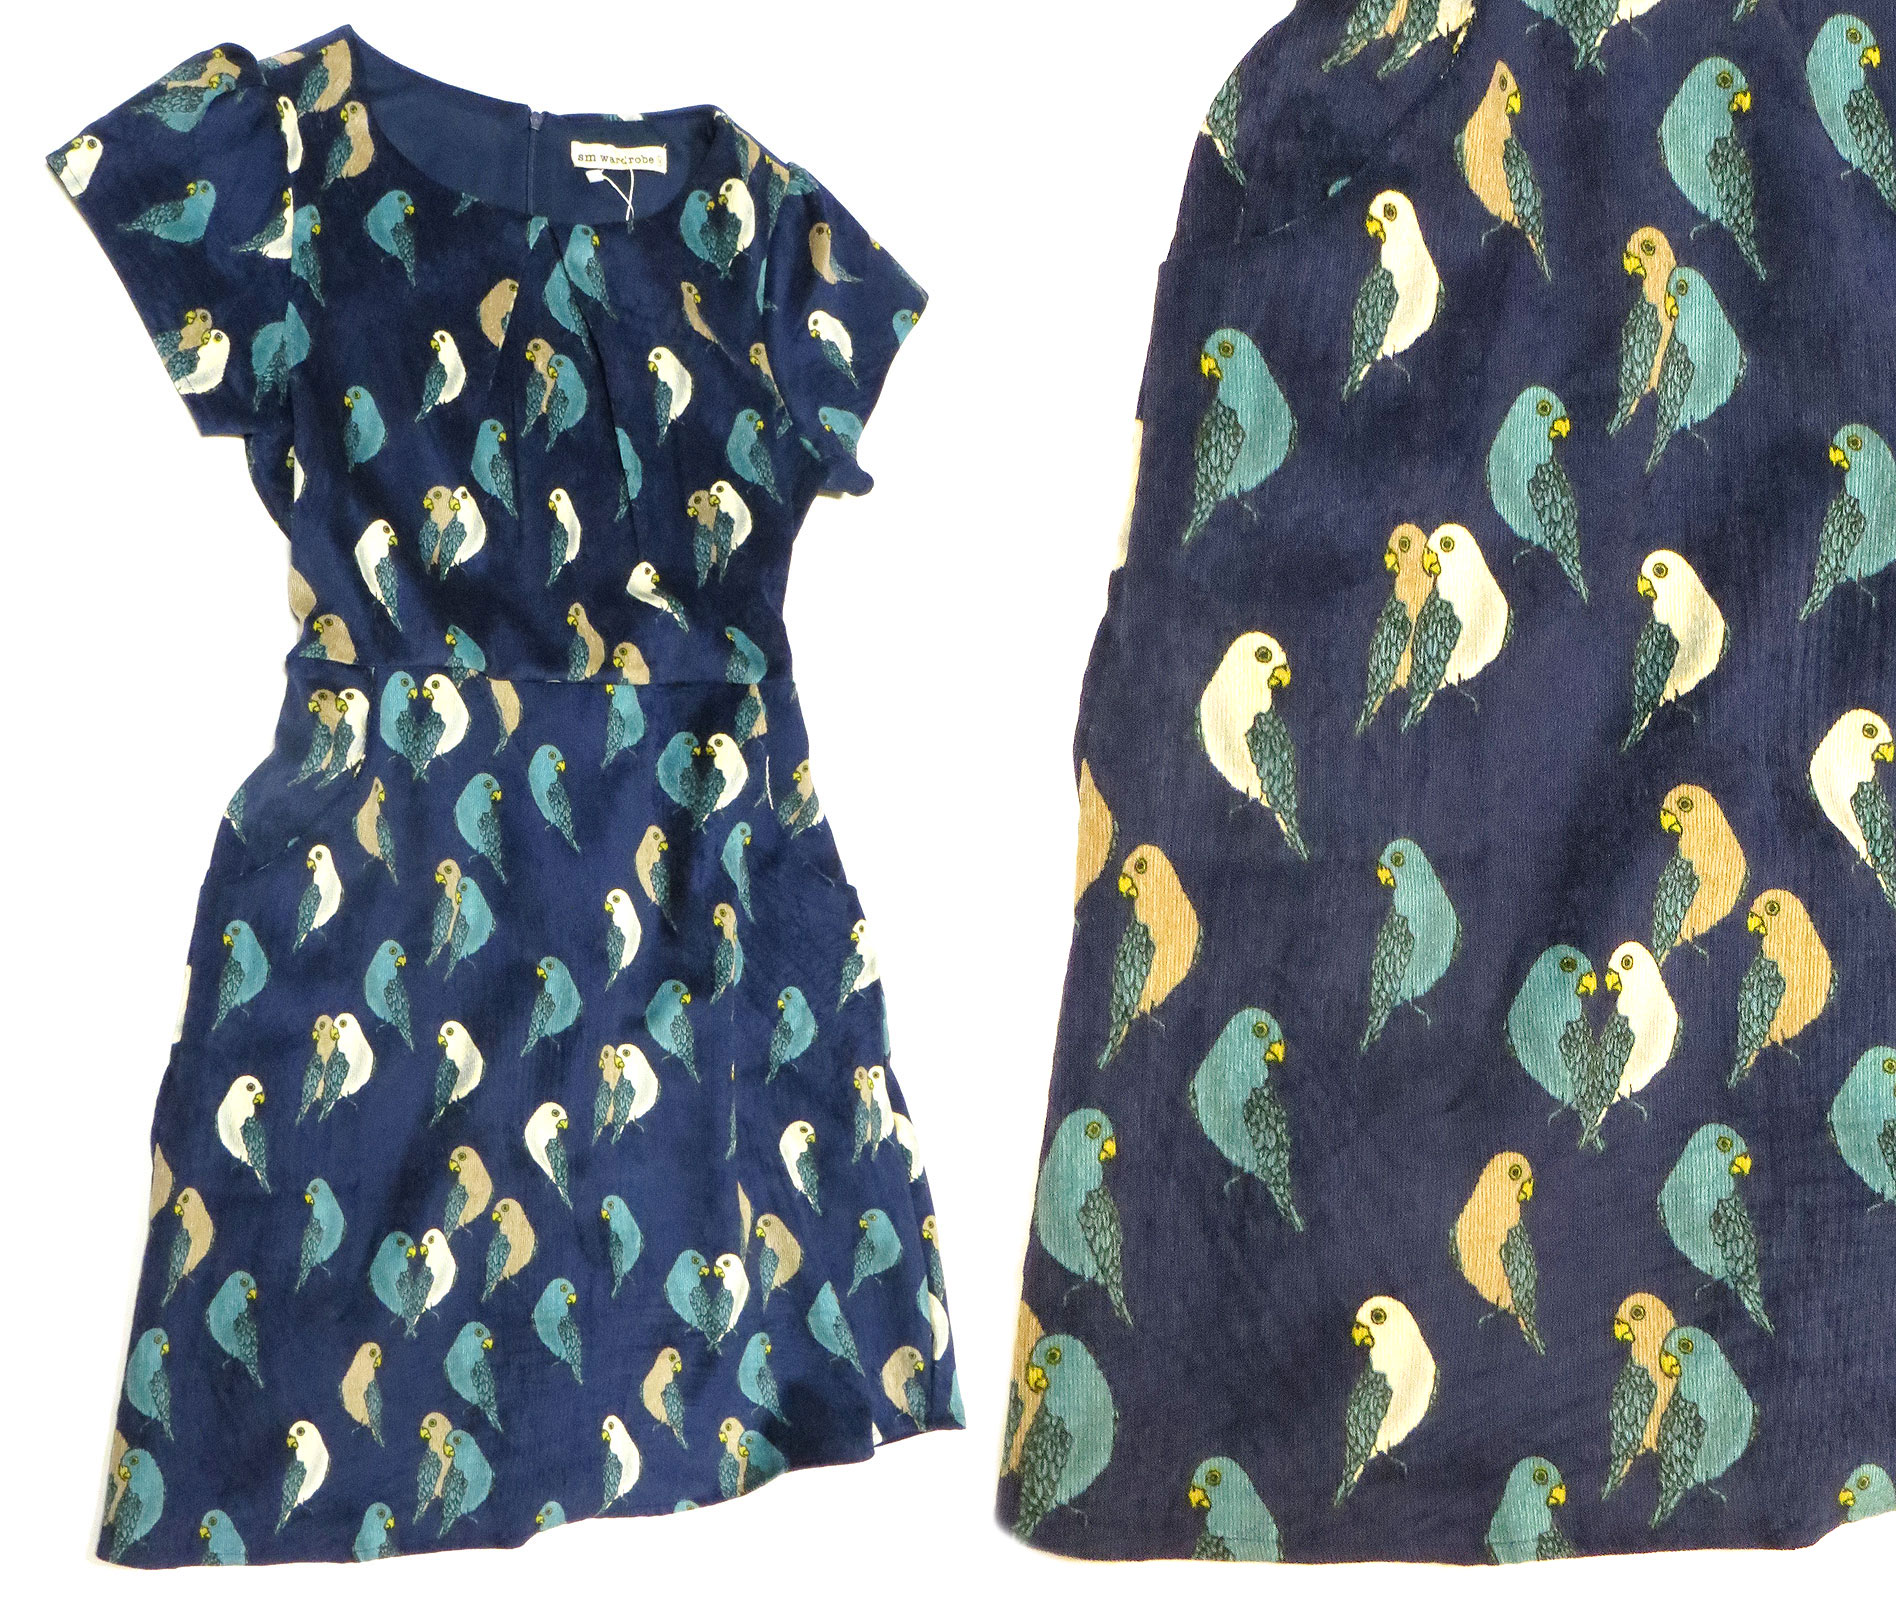 Corduroy Budgie Dress